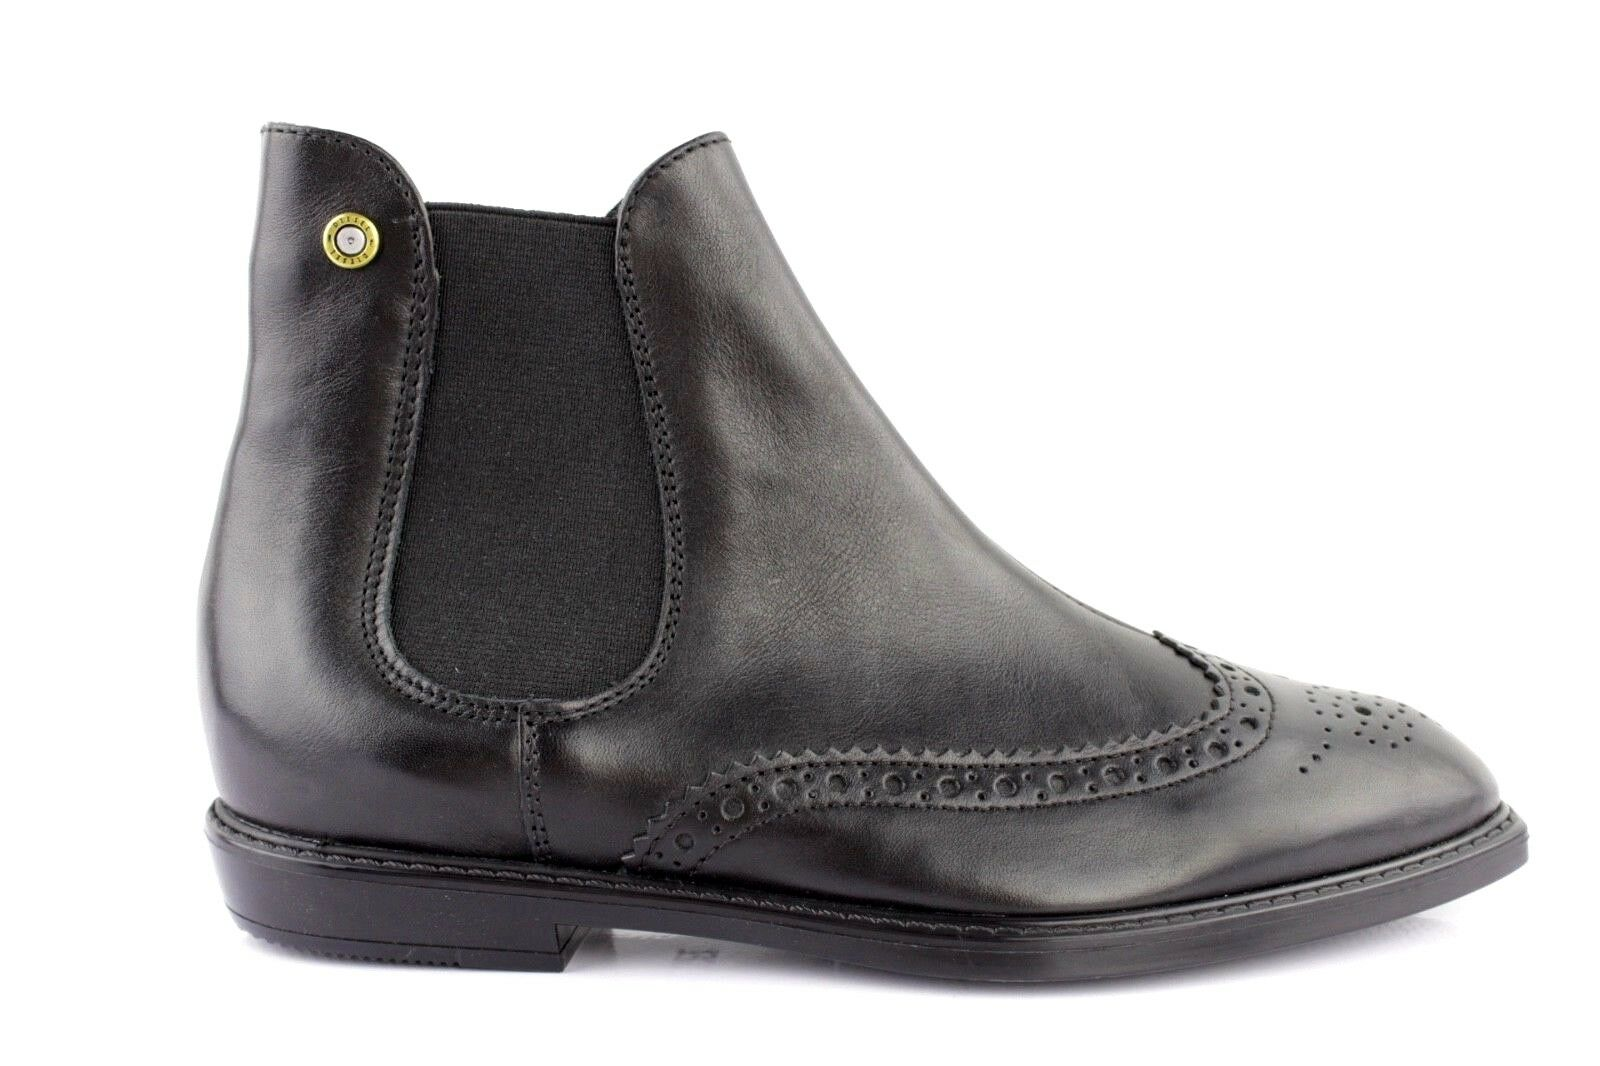 DIESEL ROCHELLE BLACK Damen Stiefelette Ancle Schuhe Chelsea Boots Budapester Ancle Stiefelette 9fb9fd